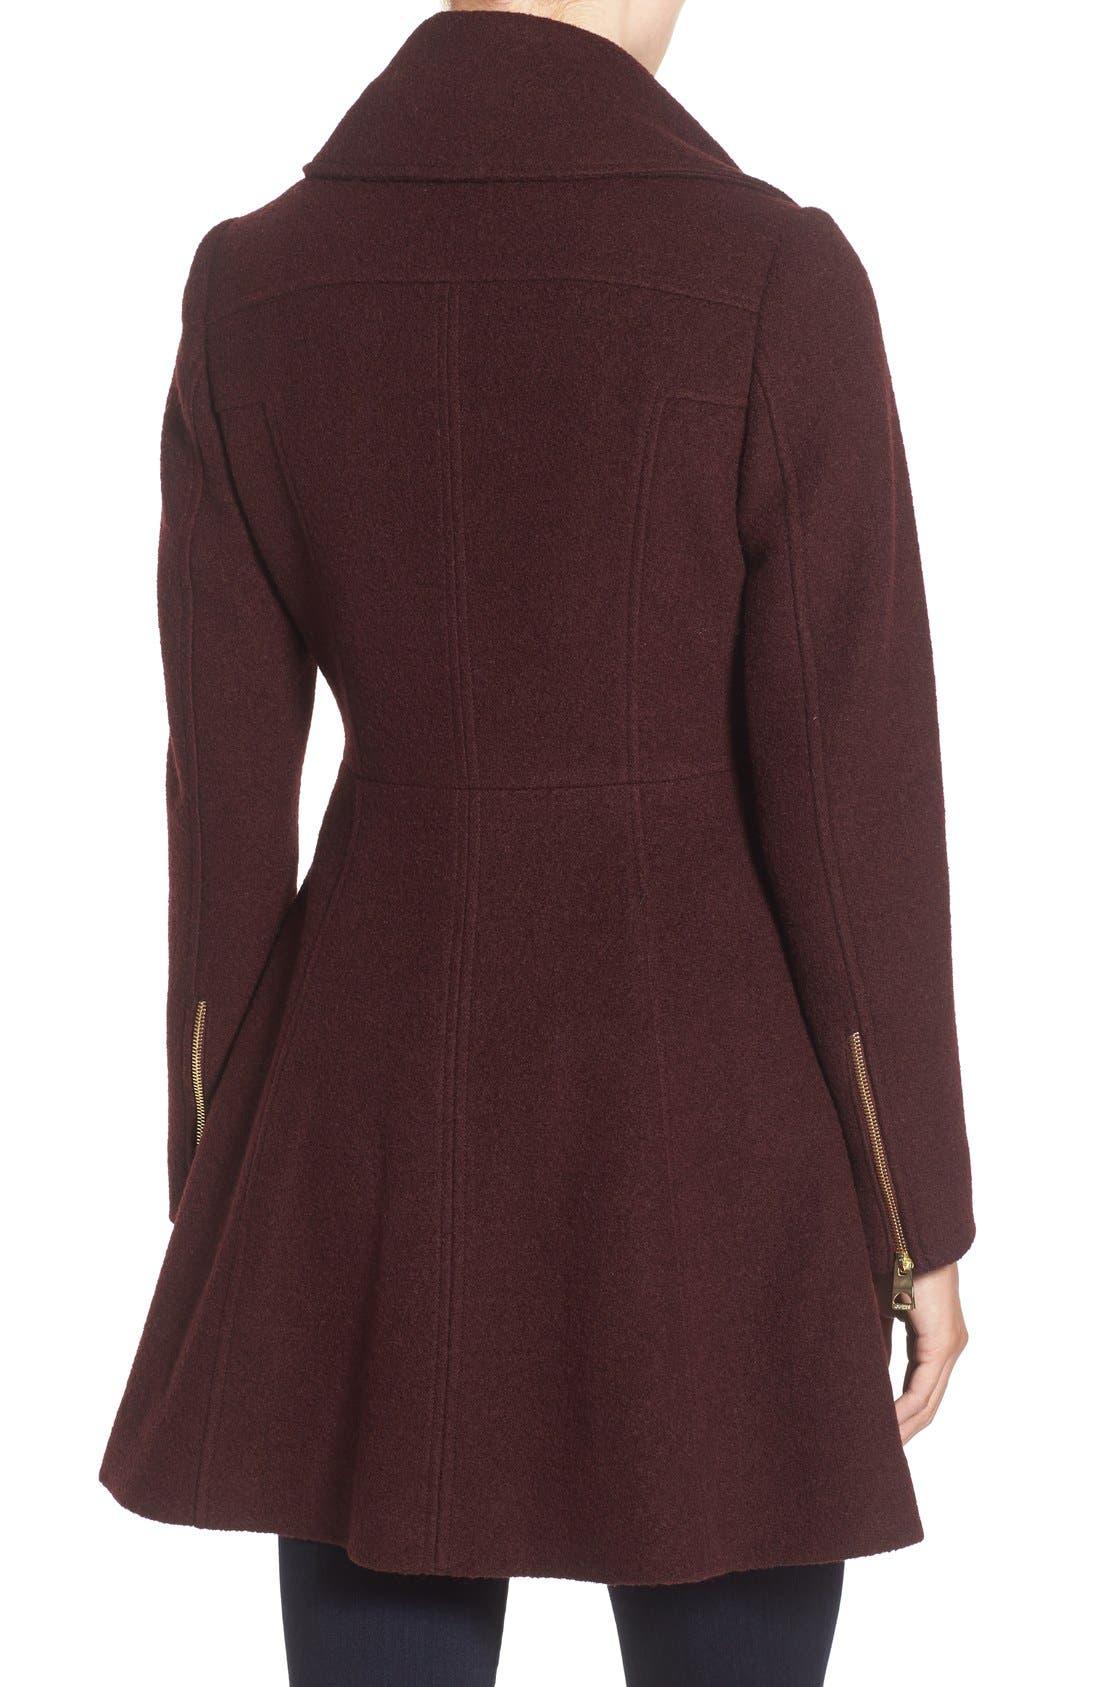 Alternate Image 2  - GUESS Envelope Collar Double Breasted Coat (Regular & Petite)